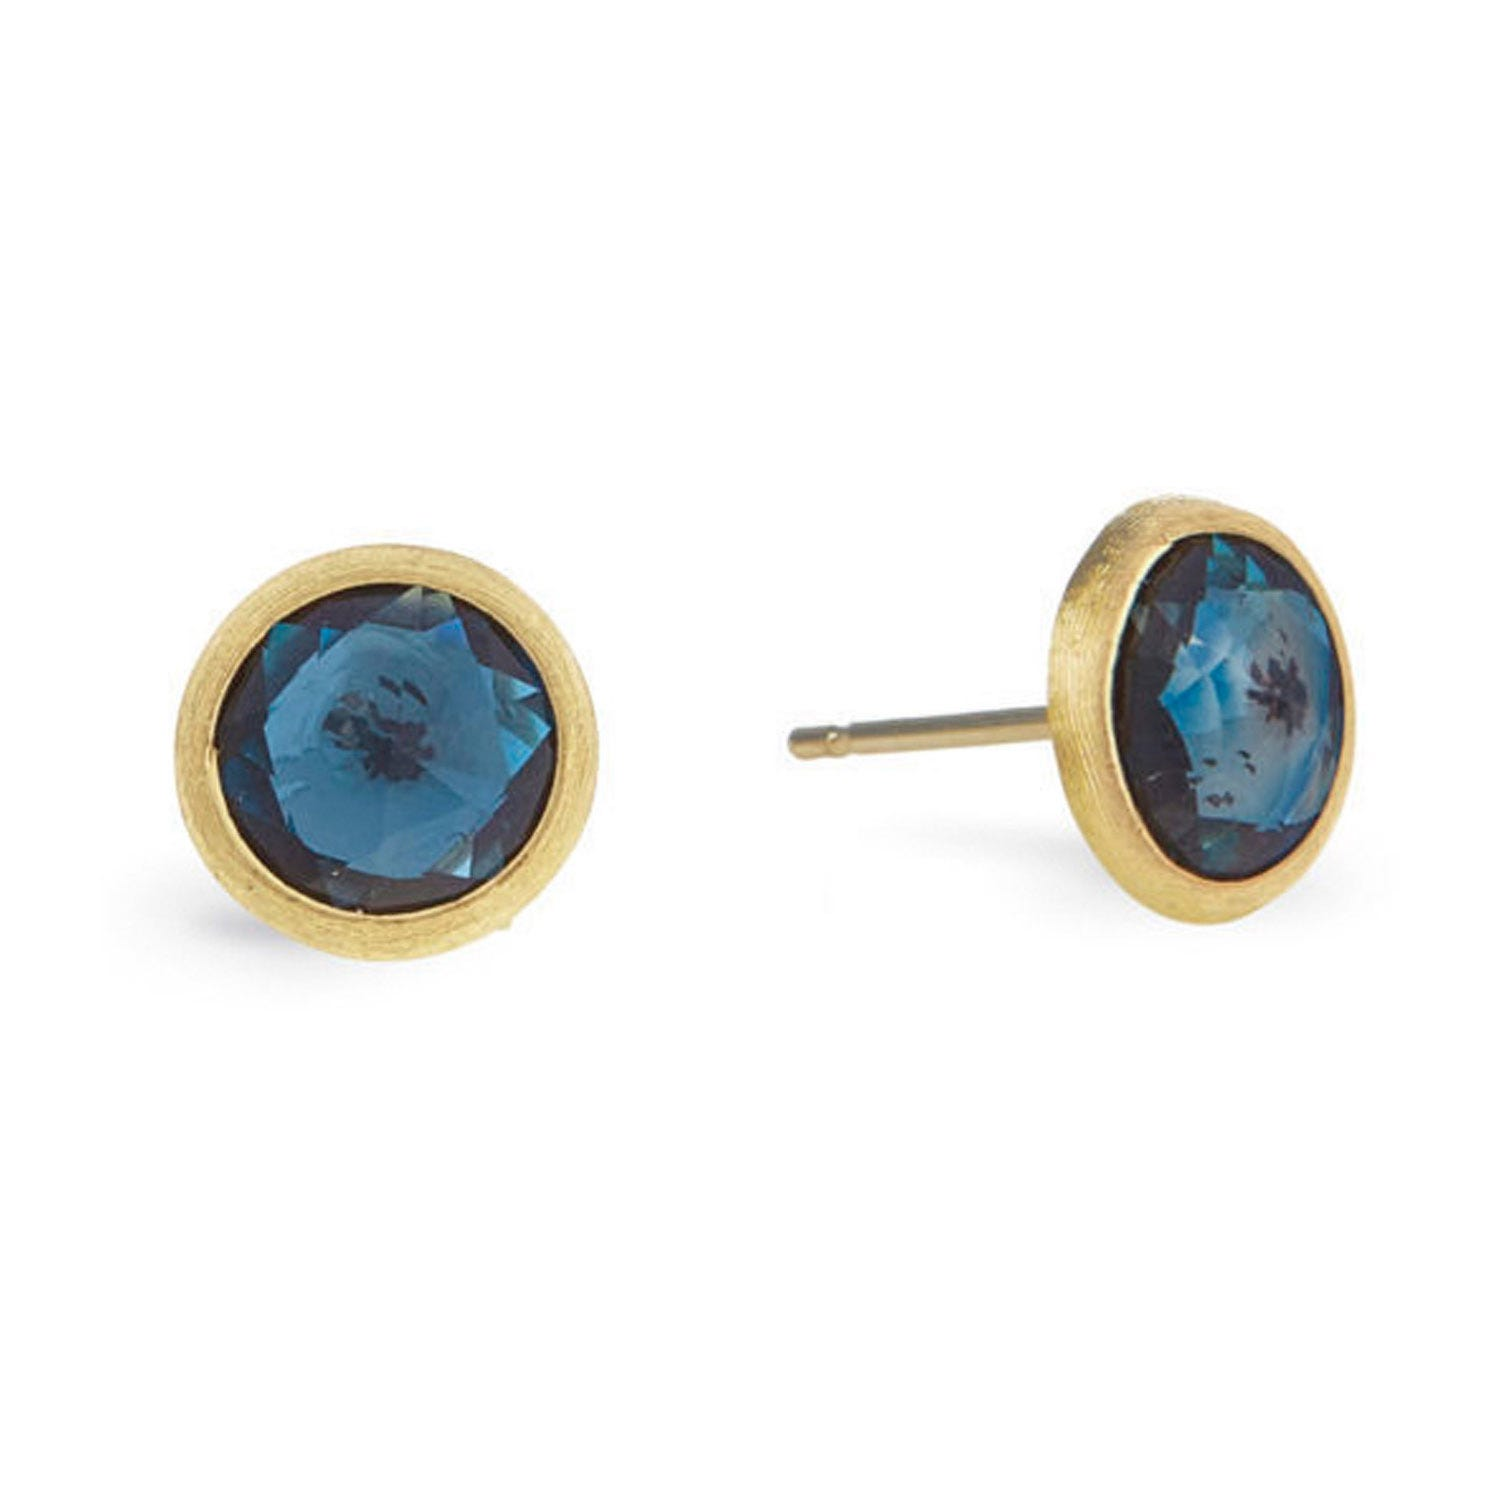 Marco Bicego Jaipur 18ct Yellow Gold Blue Topaz Stud Earrings